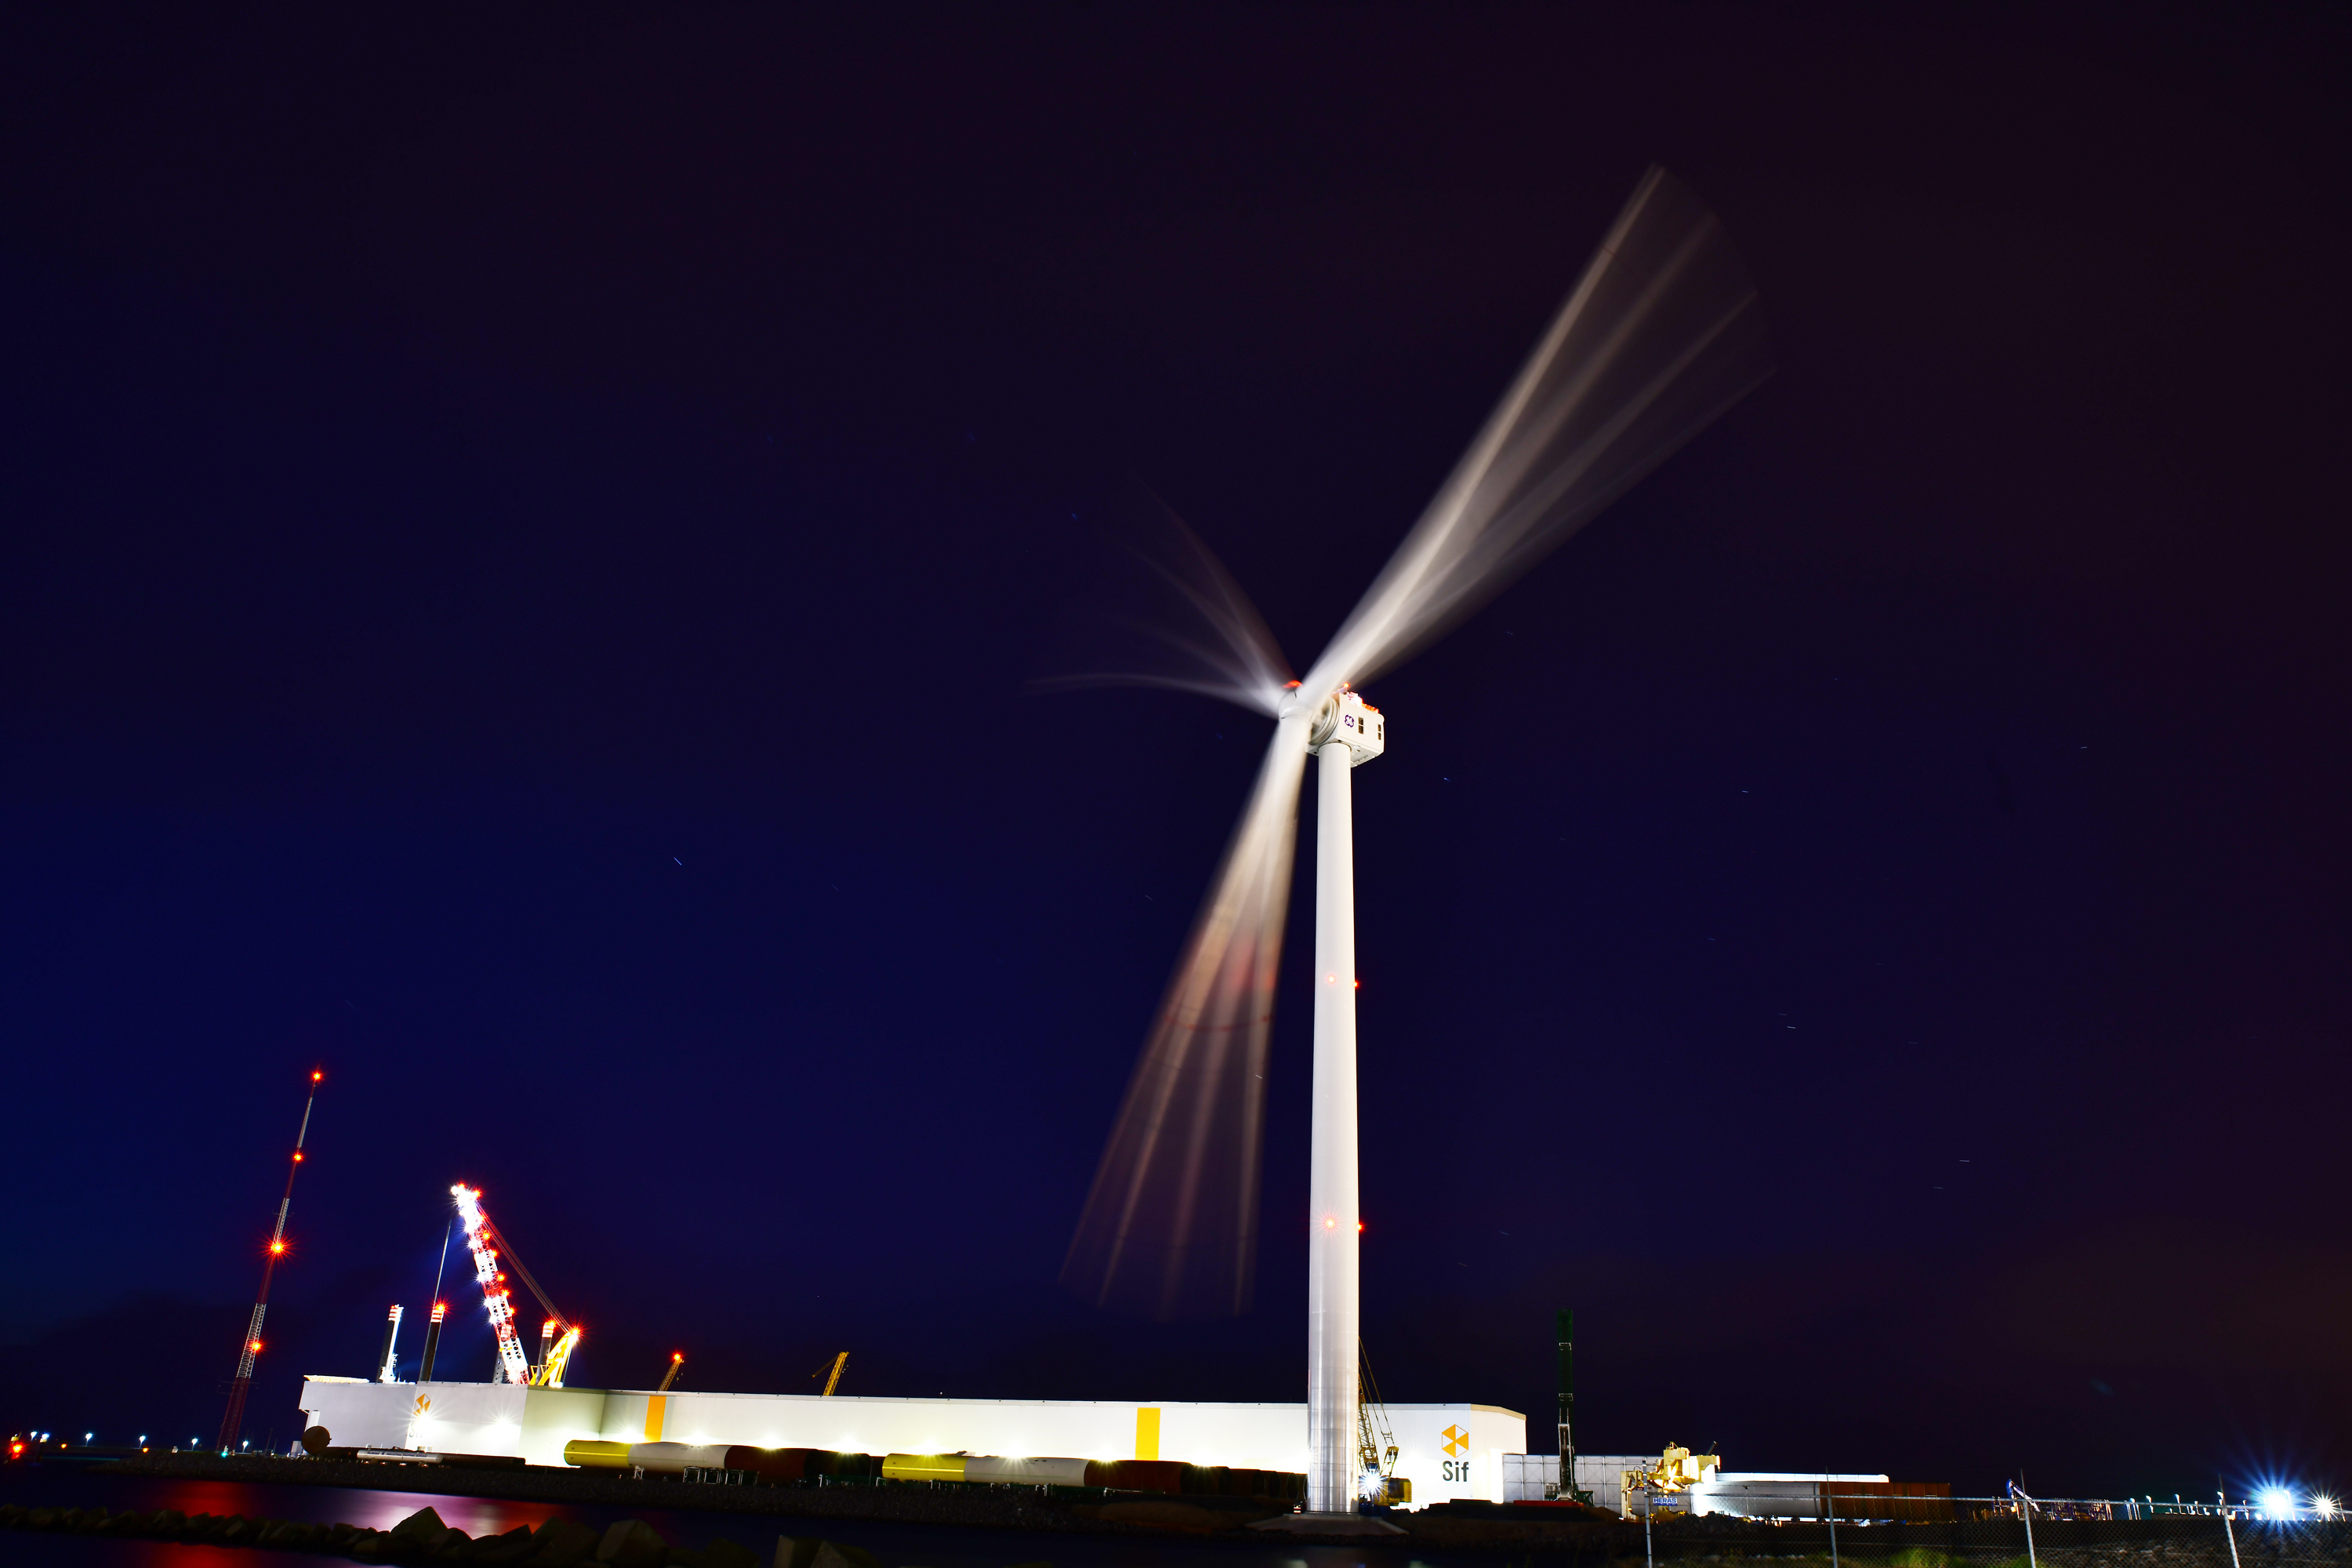 wind-offshore-haliade-x-prototype-night-3000px